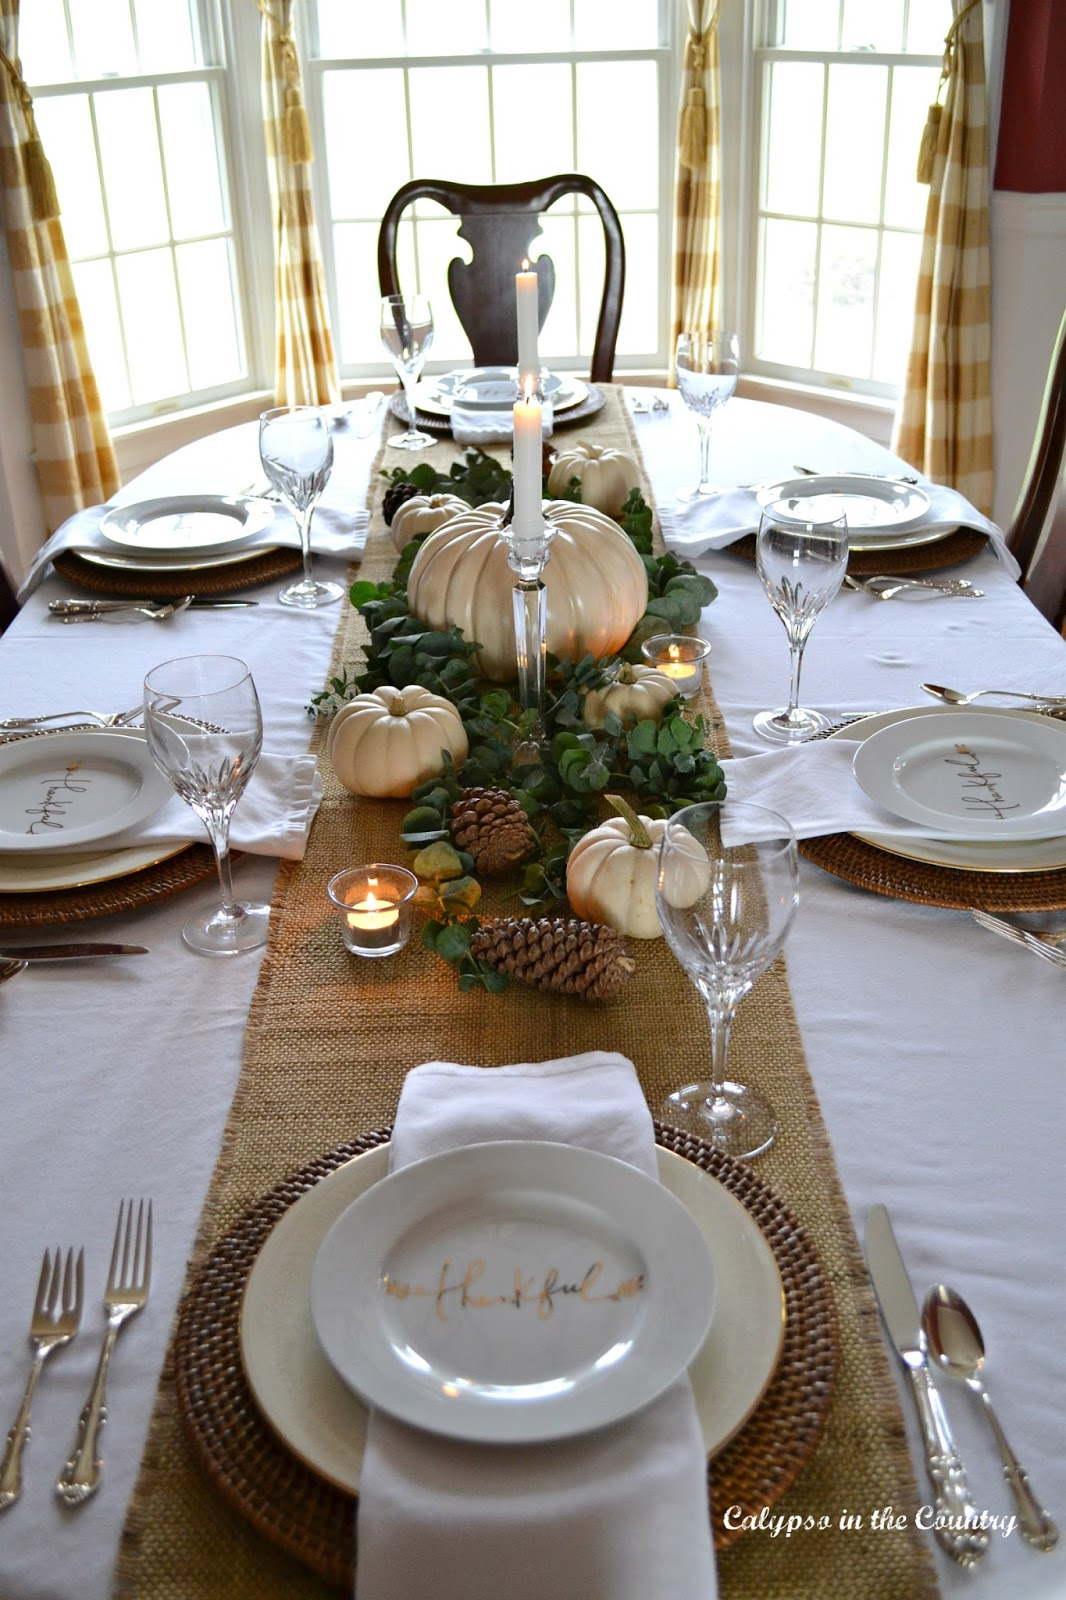 Burlap Runner and White Pumpkins for Thanksgiving Centerpiece